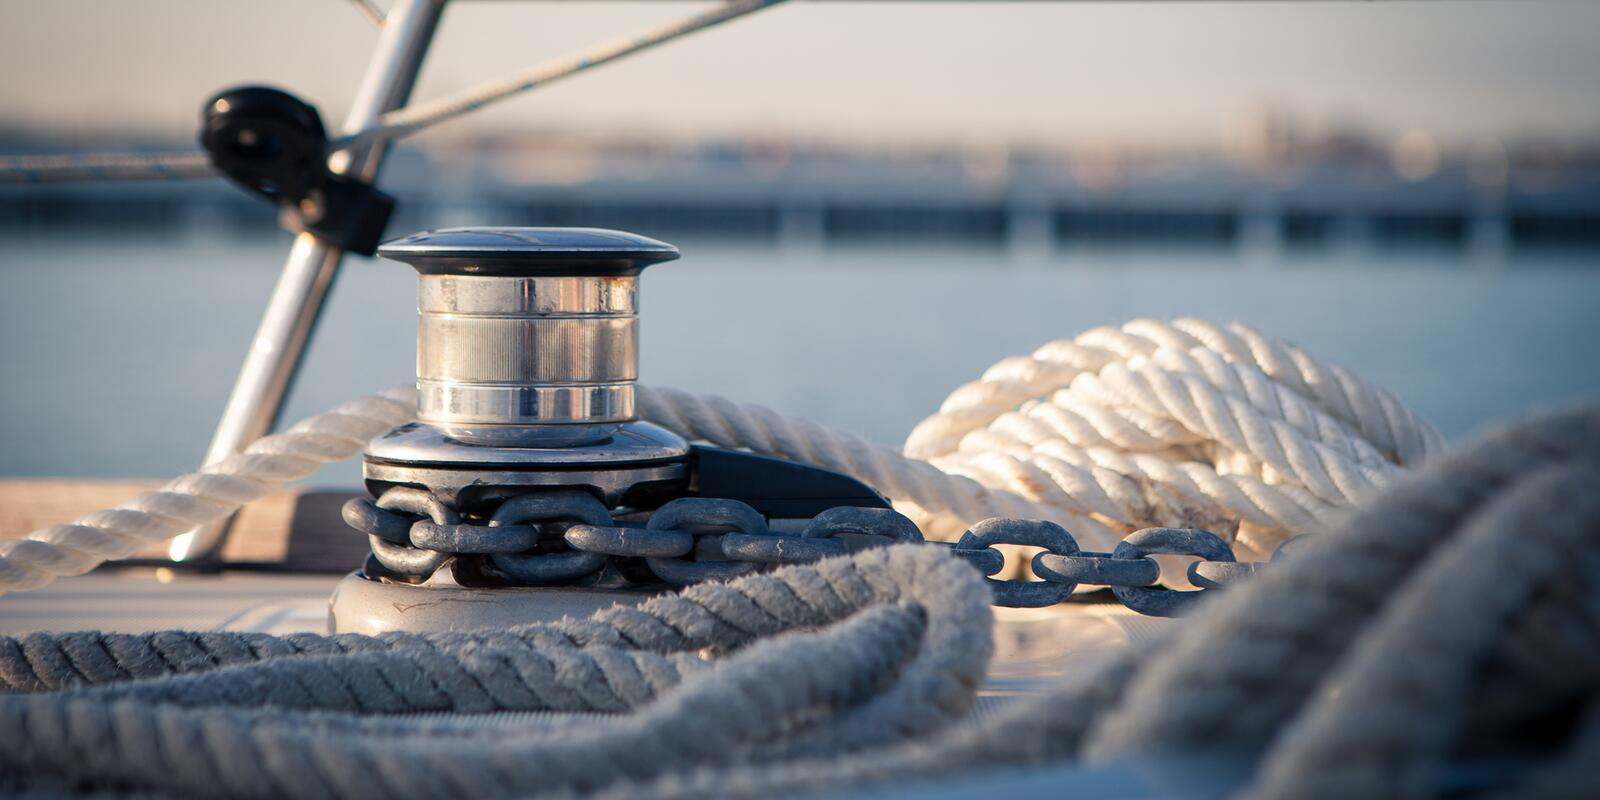 MOORING AND ANCHORING COURSE - Theory and Practice of Sailing FOR A DAY OUTSIDE THE LINES